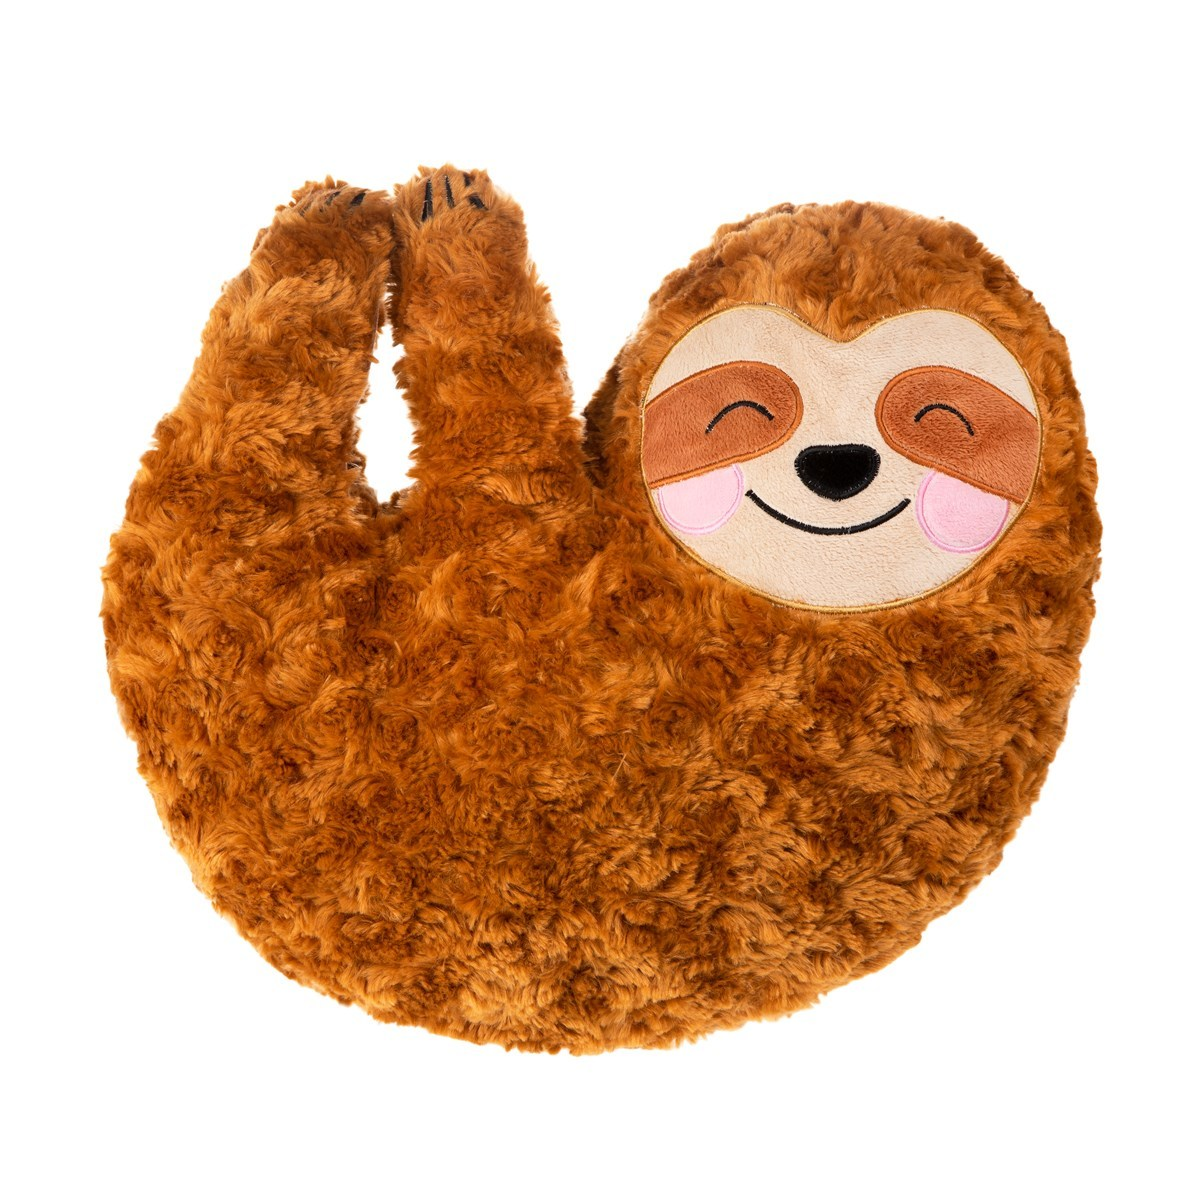 Happy Sloth Cuddle Time Cushion image